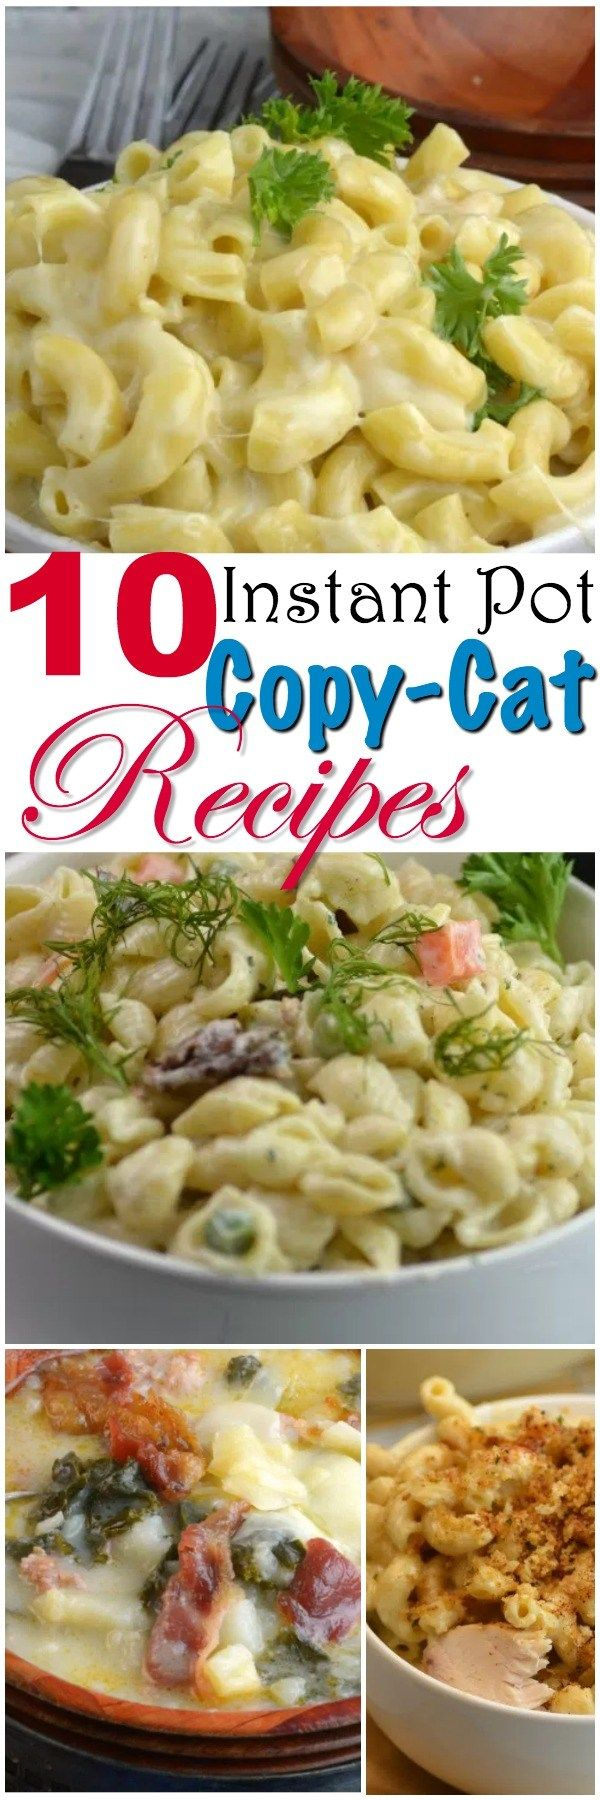 Share with friends9 178  1  188Shares10 Instant Pot Copy Cat Recipes Now that my kids are grown and out of the house, my husband and I love to go out to eat. I love to come home and try to make the same dish at home for half the cost right in my Instant Pot. I have 10 …